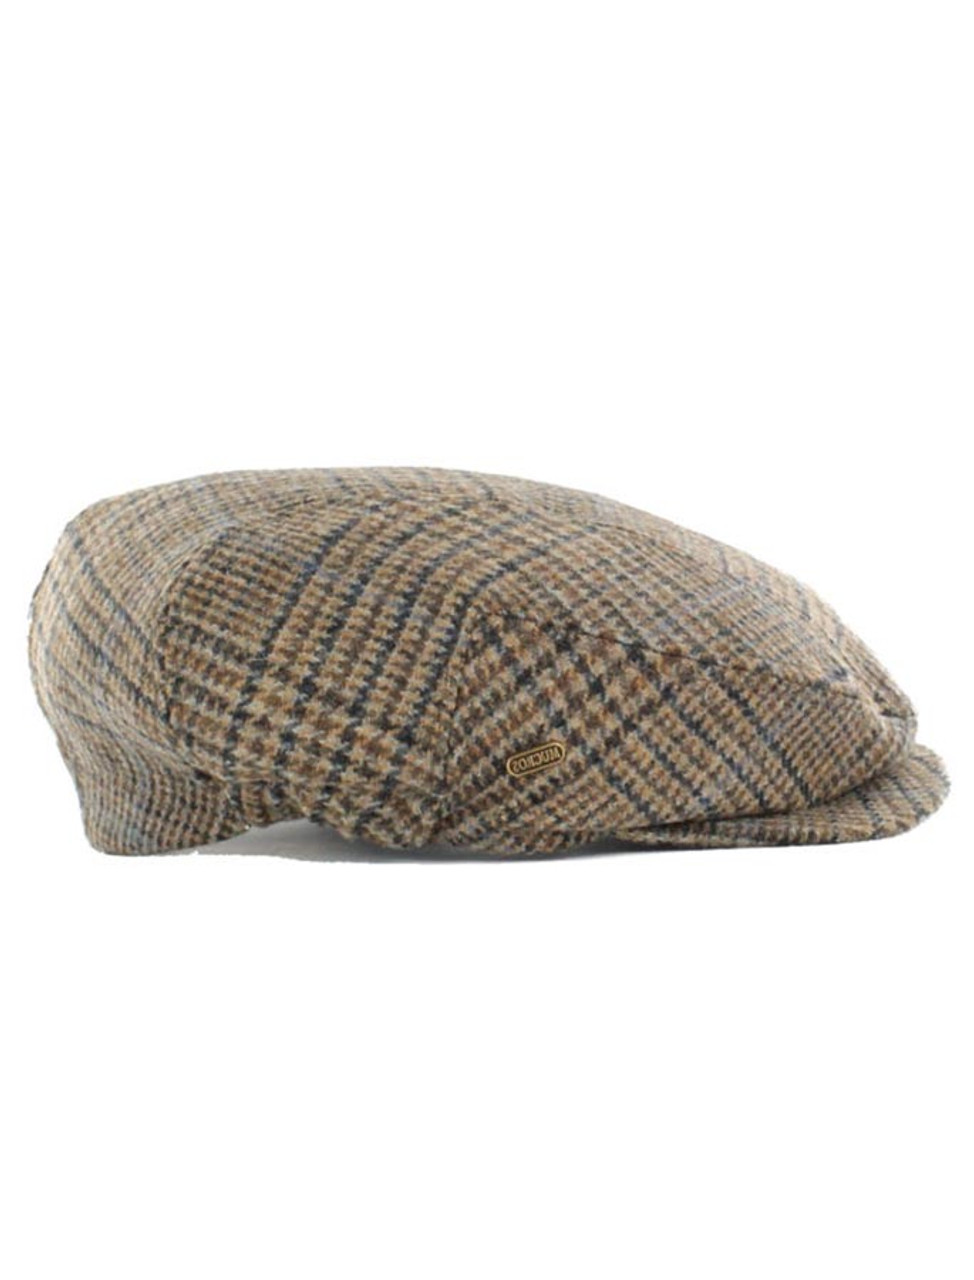 1cfb5e08585 Kerry Tweed Flat Cap - Brown Check